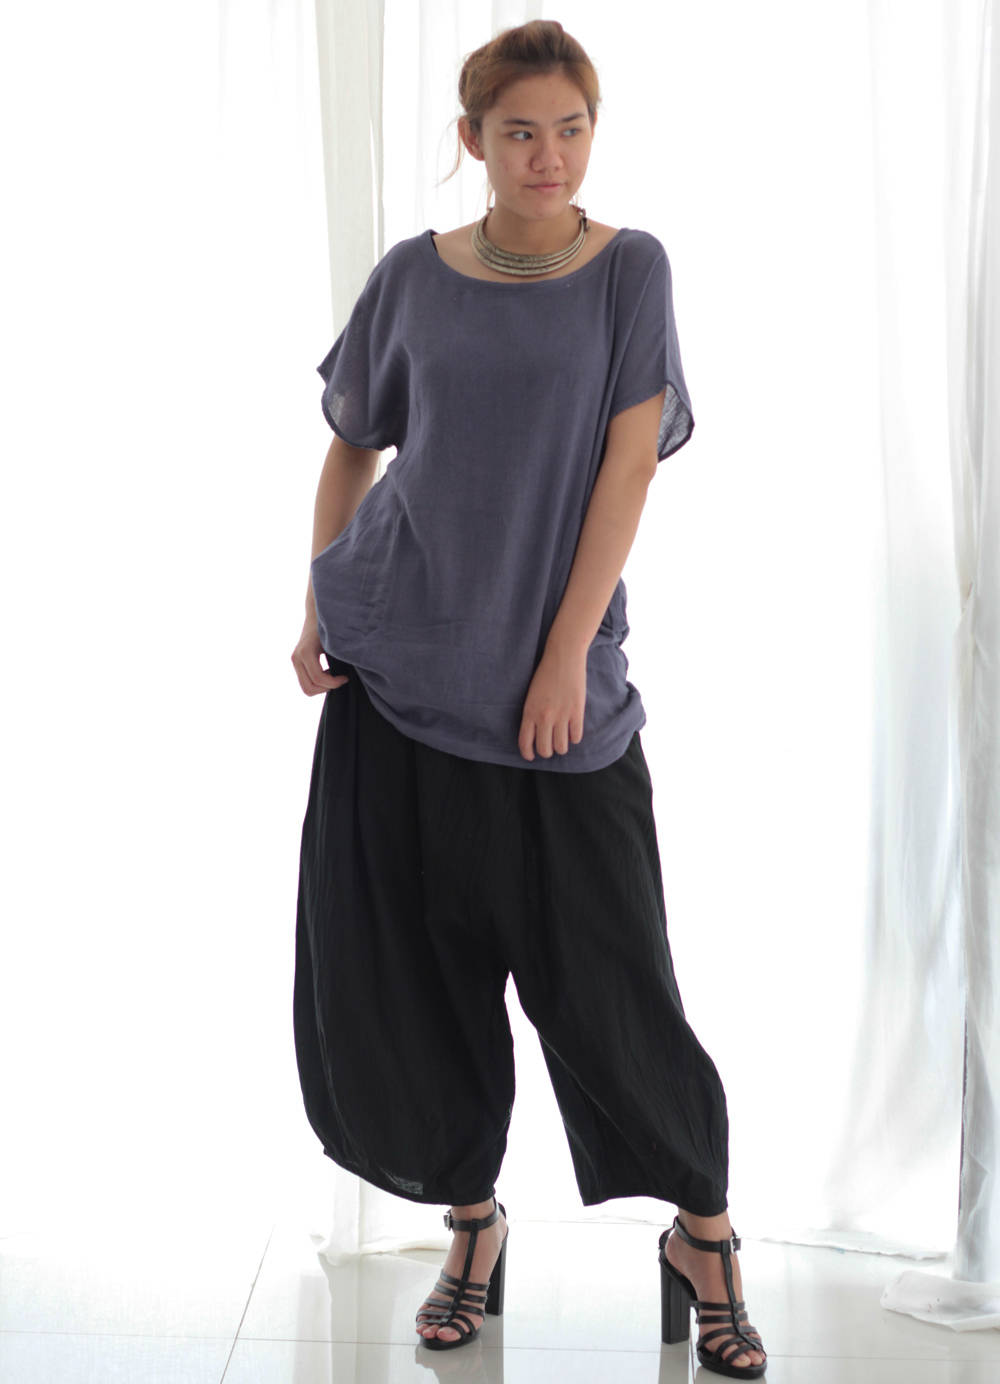 Pants..Cotton 100% Pants 135 A Harem Pants / Summer Pants/ capris pants